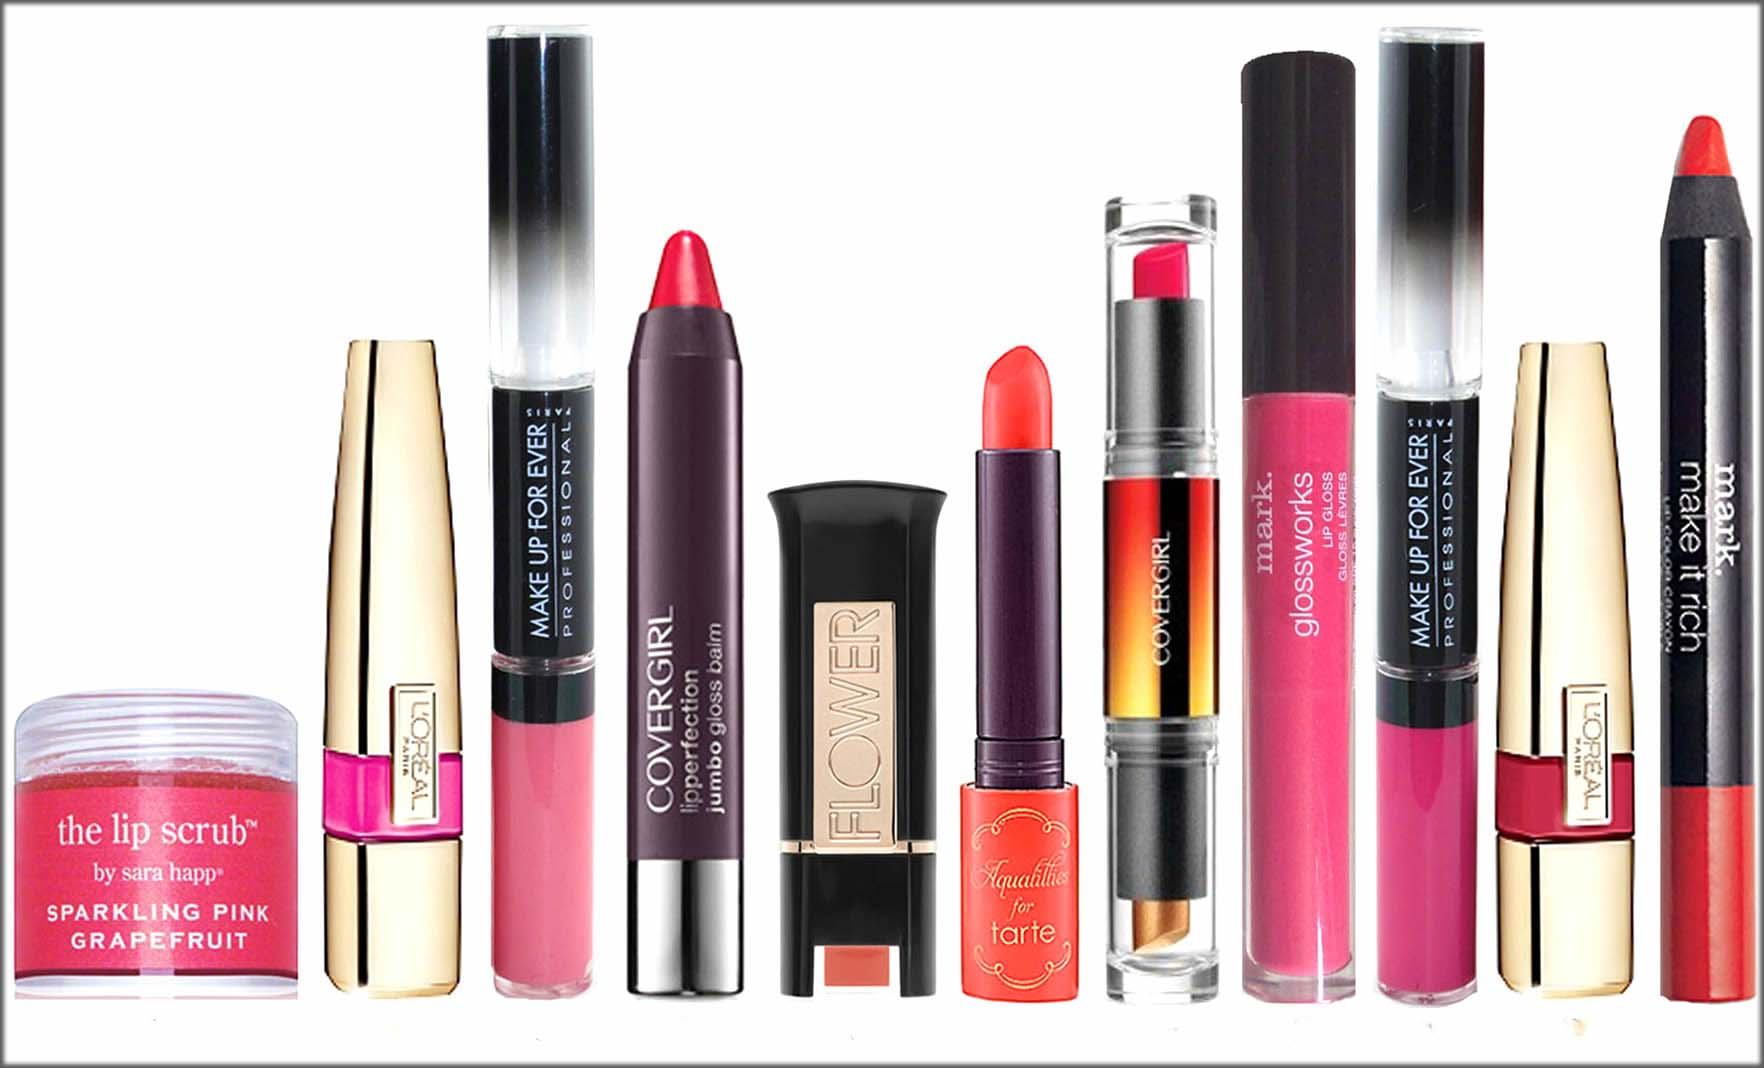 Top 15 Best Makeup Brands In The World We Love The Most